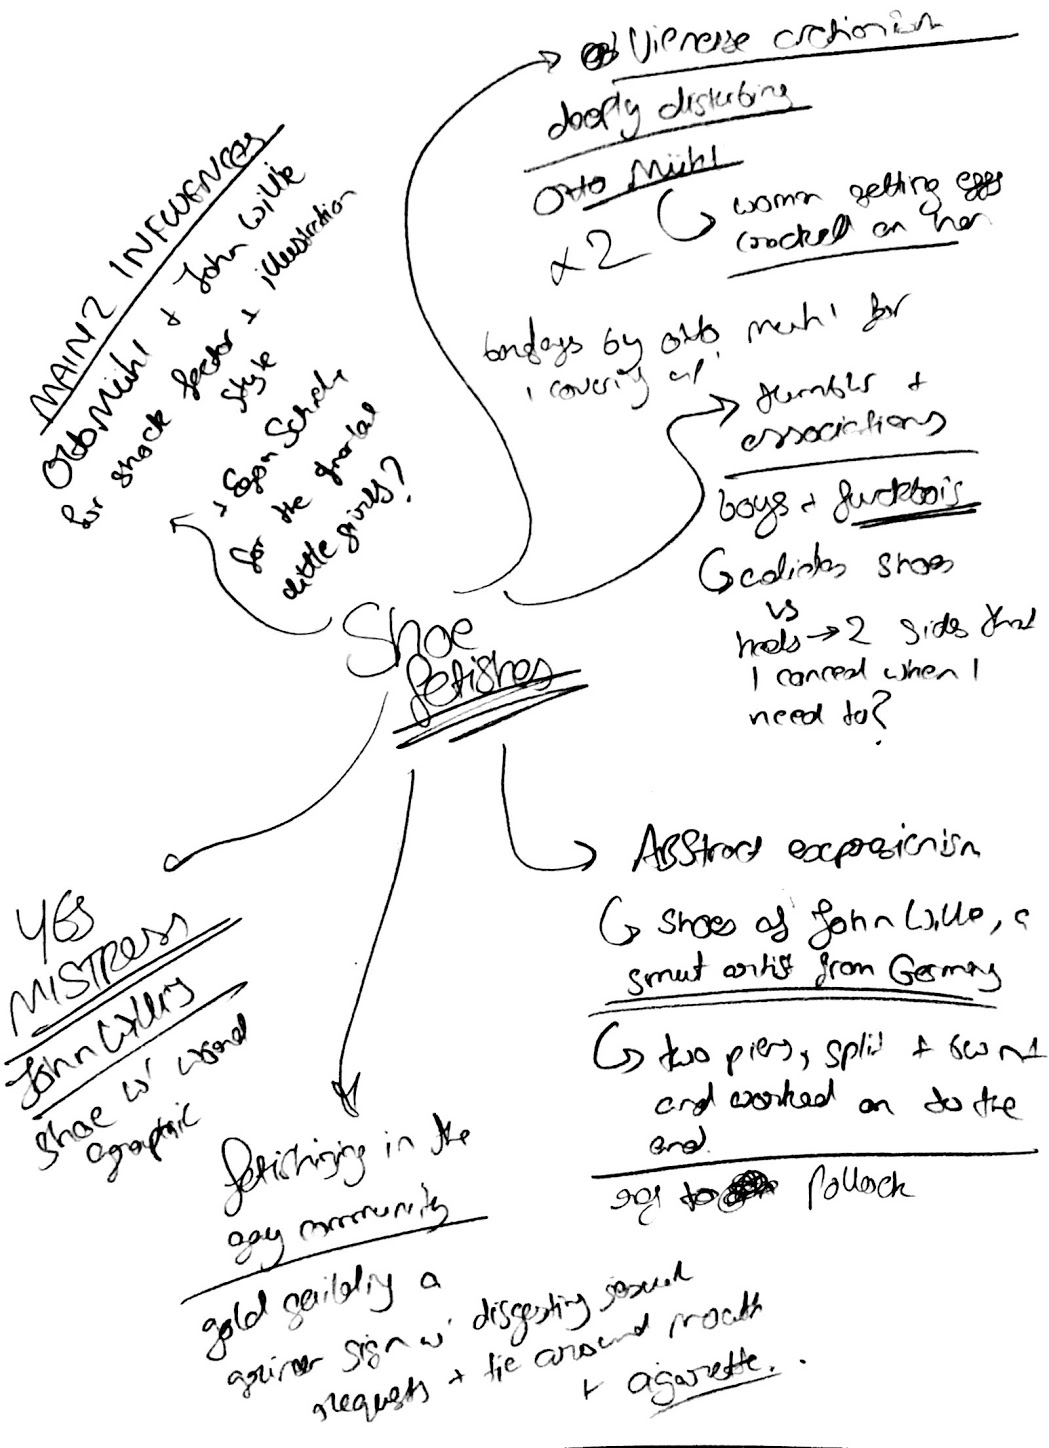 mind mapping and in class LP post of context research